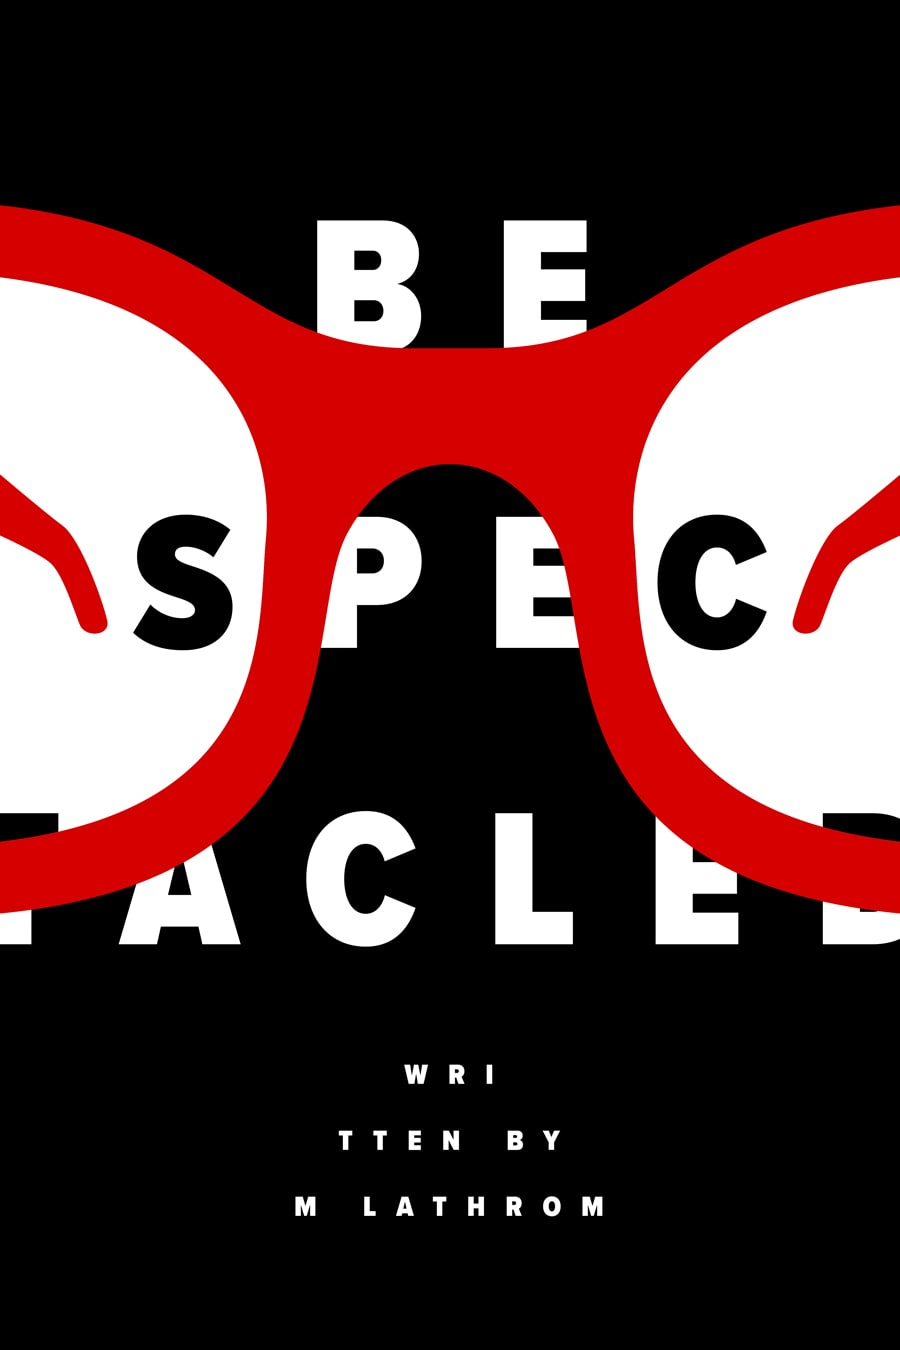 Bespectacled Poster